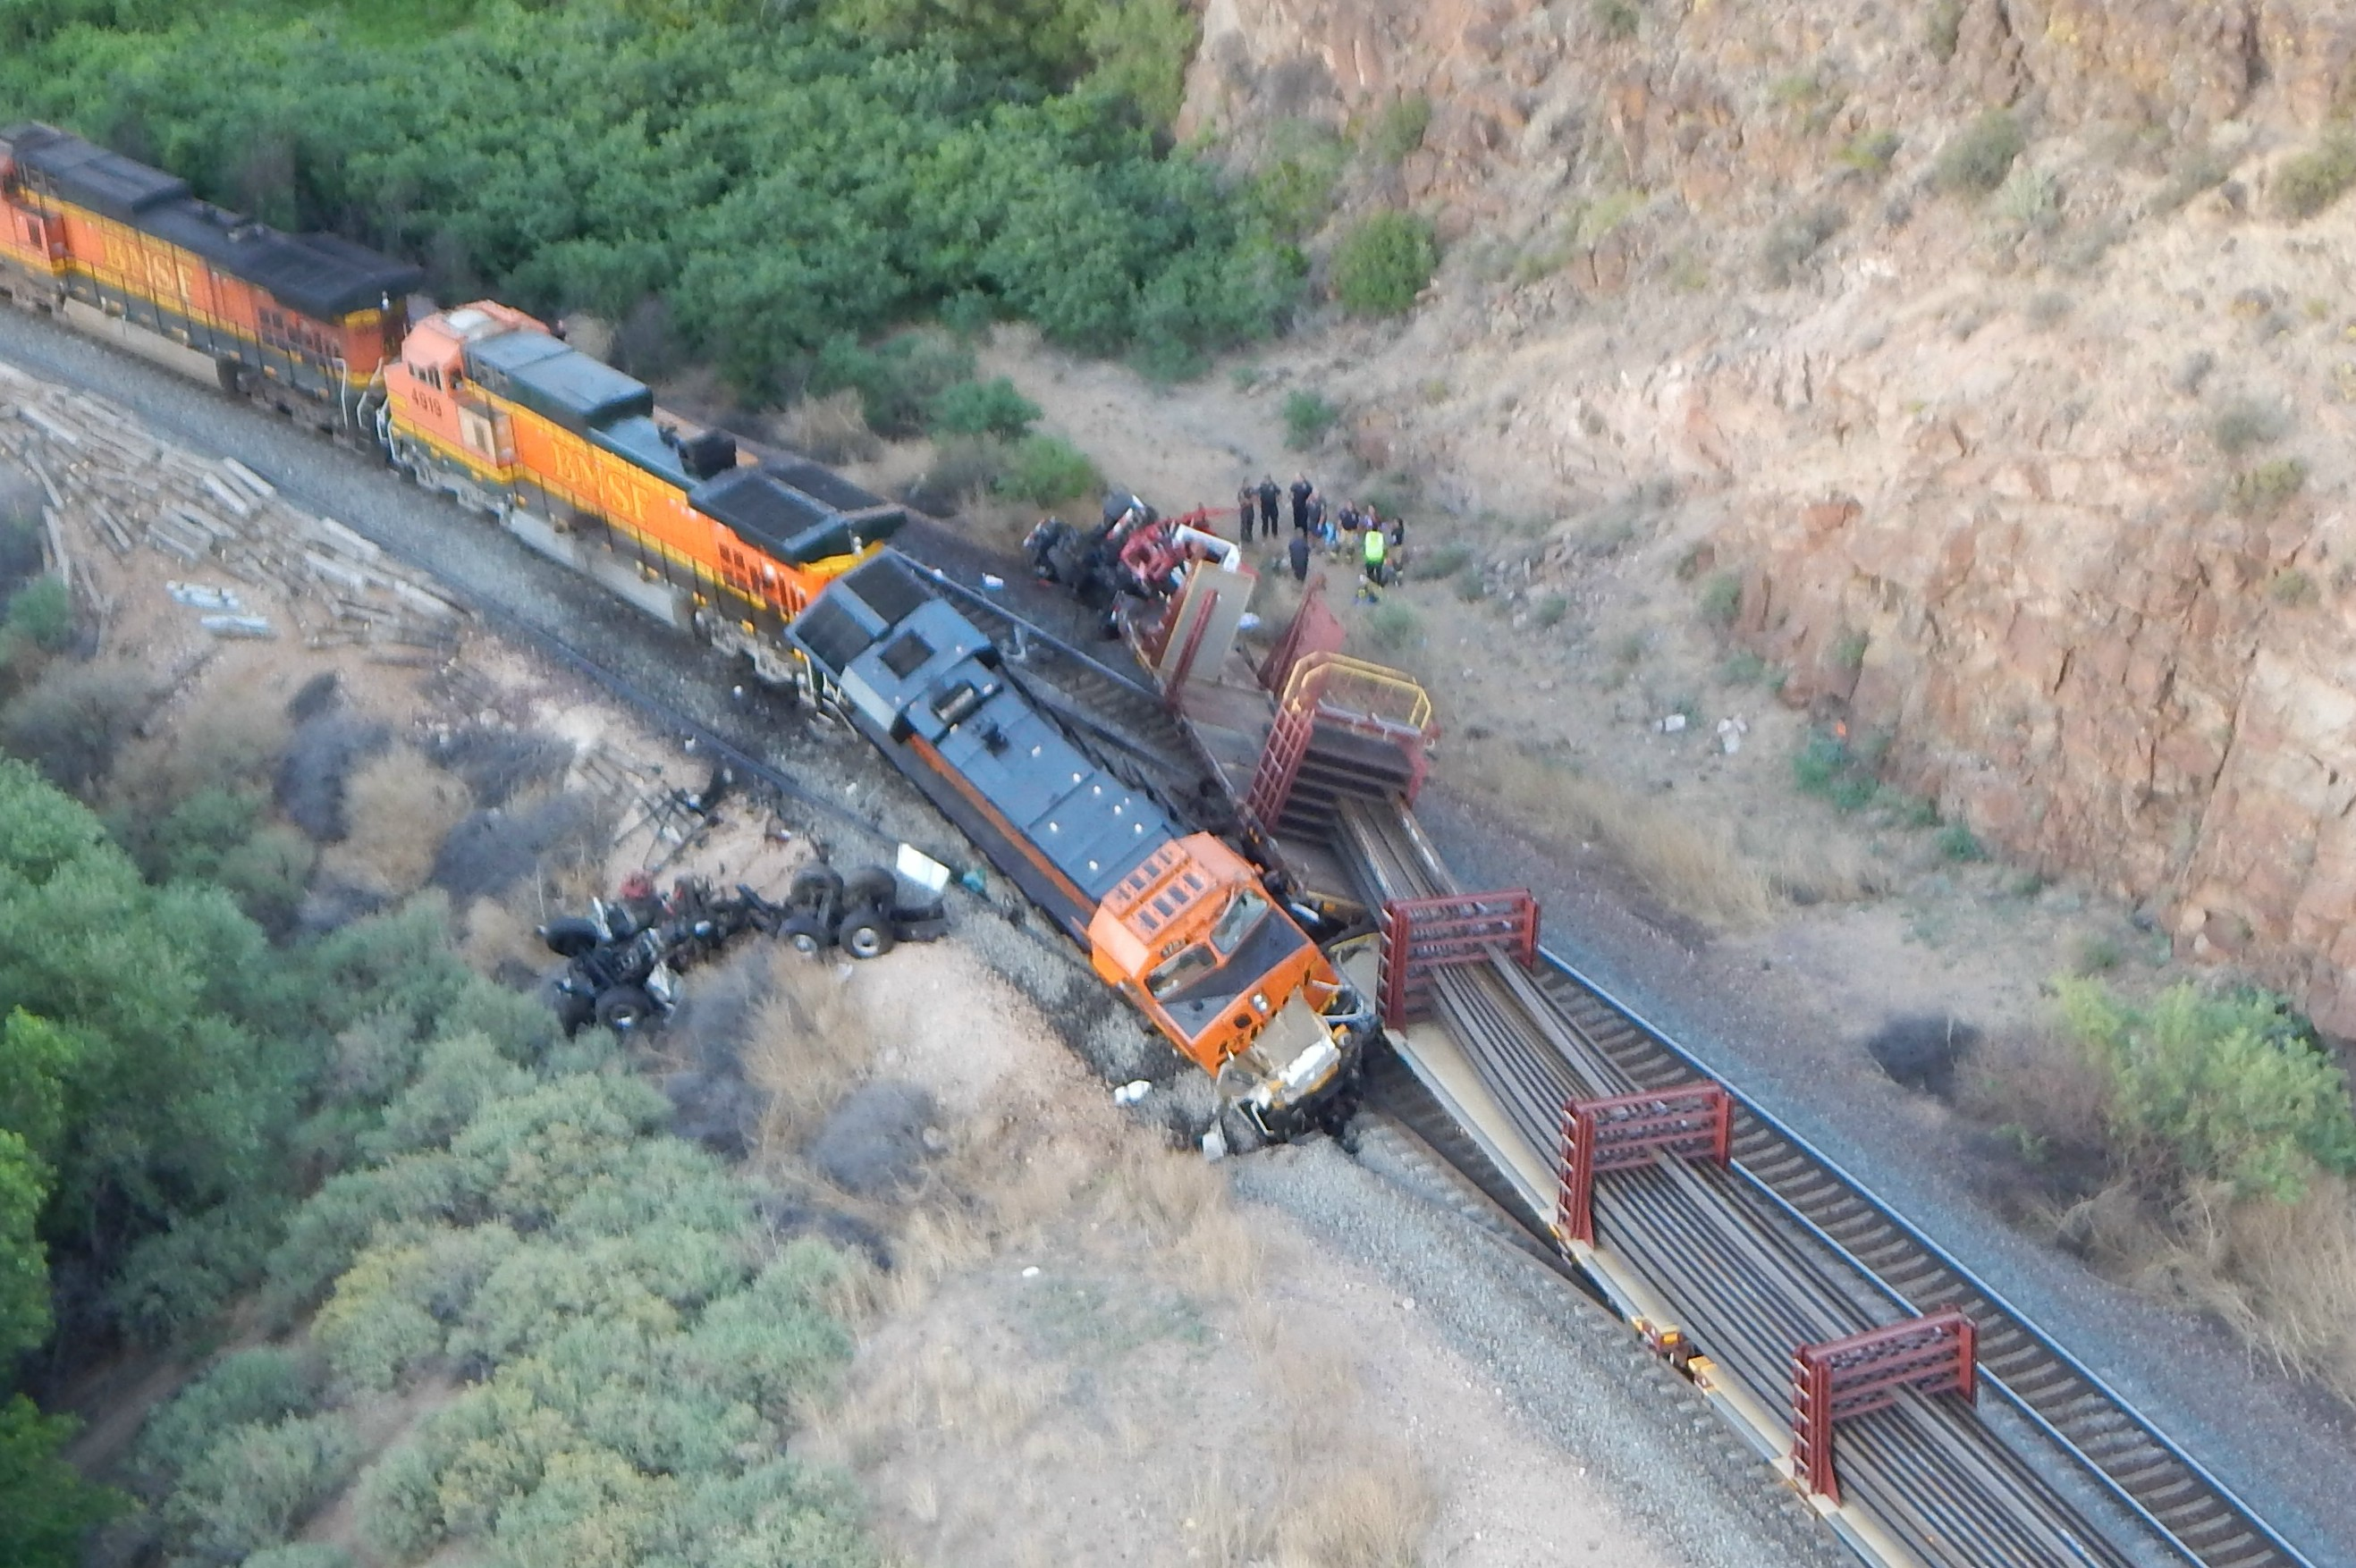 294 best images about Incidenti Ferroviari on Pinterest ...  |Rail Road Train Wreck